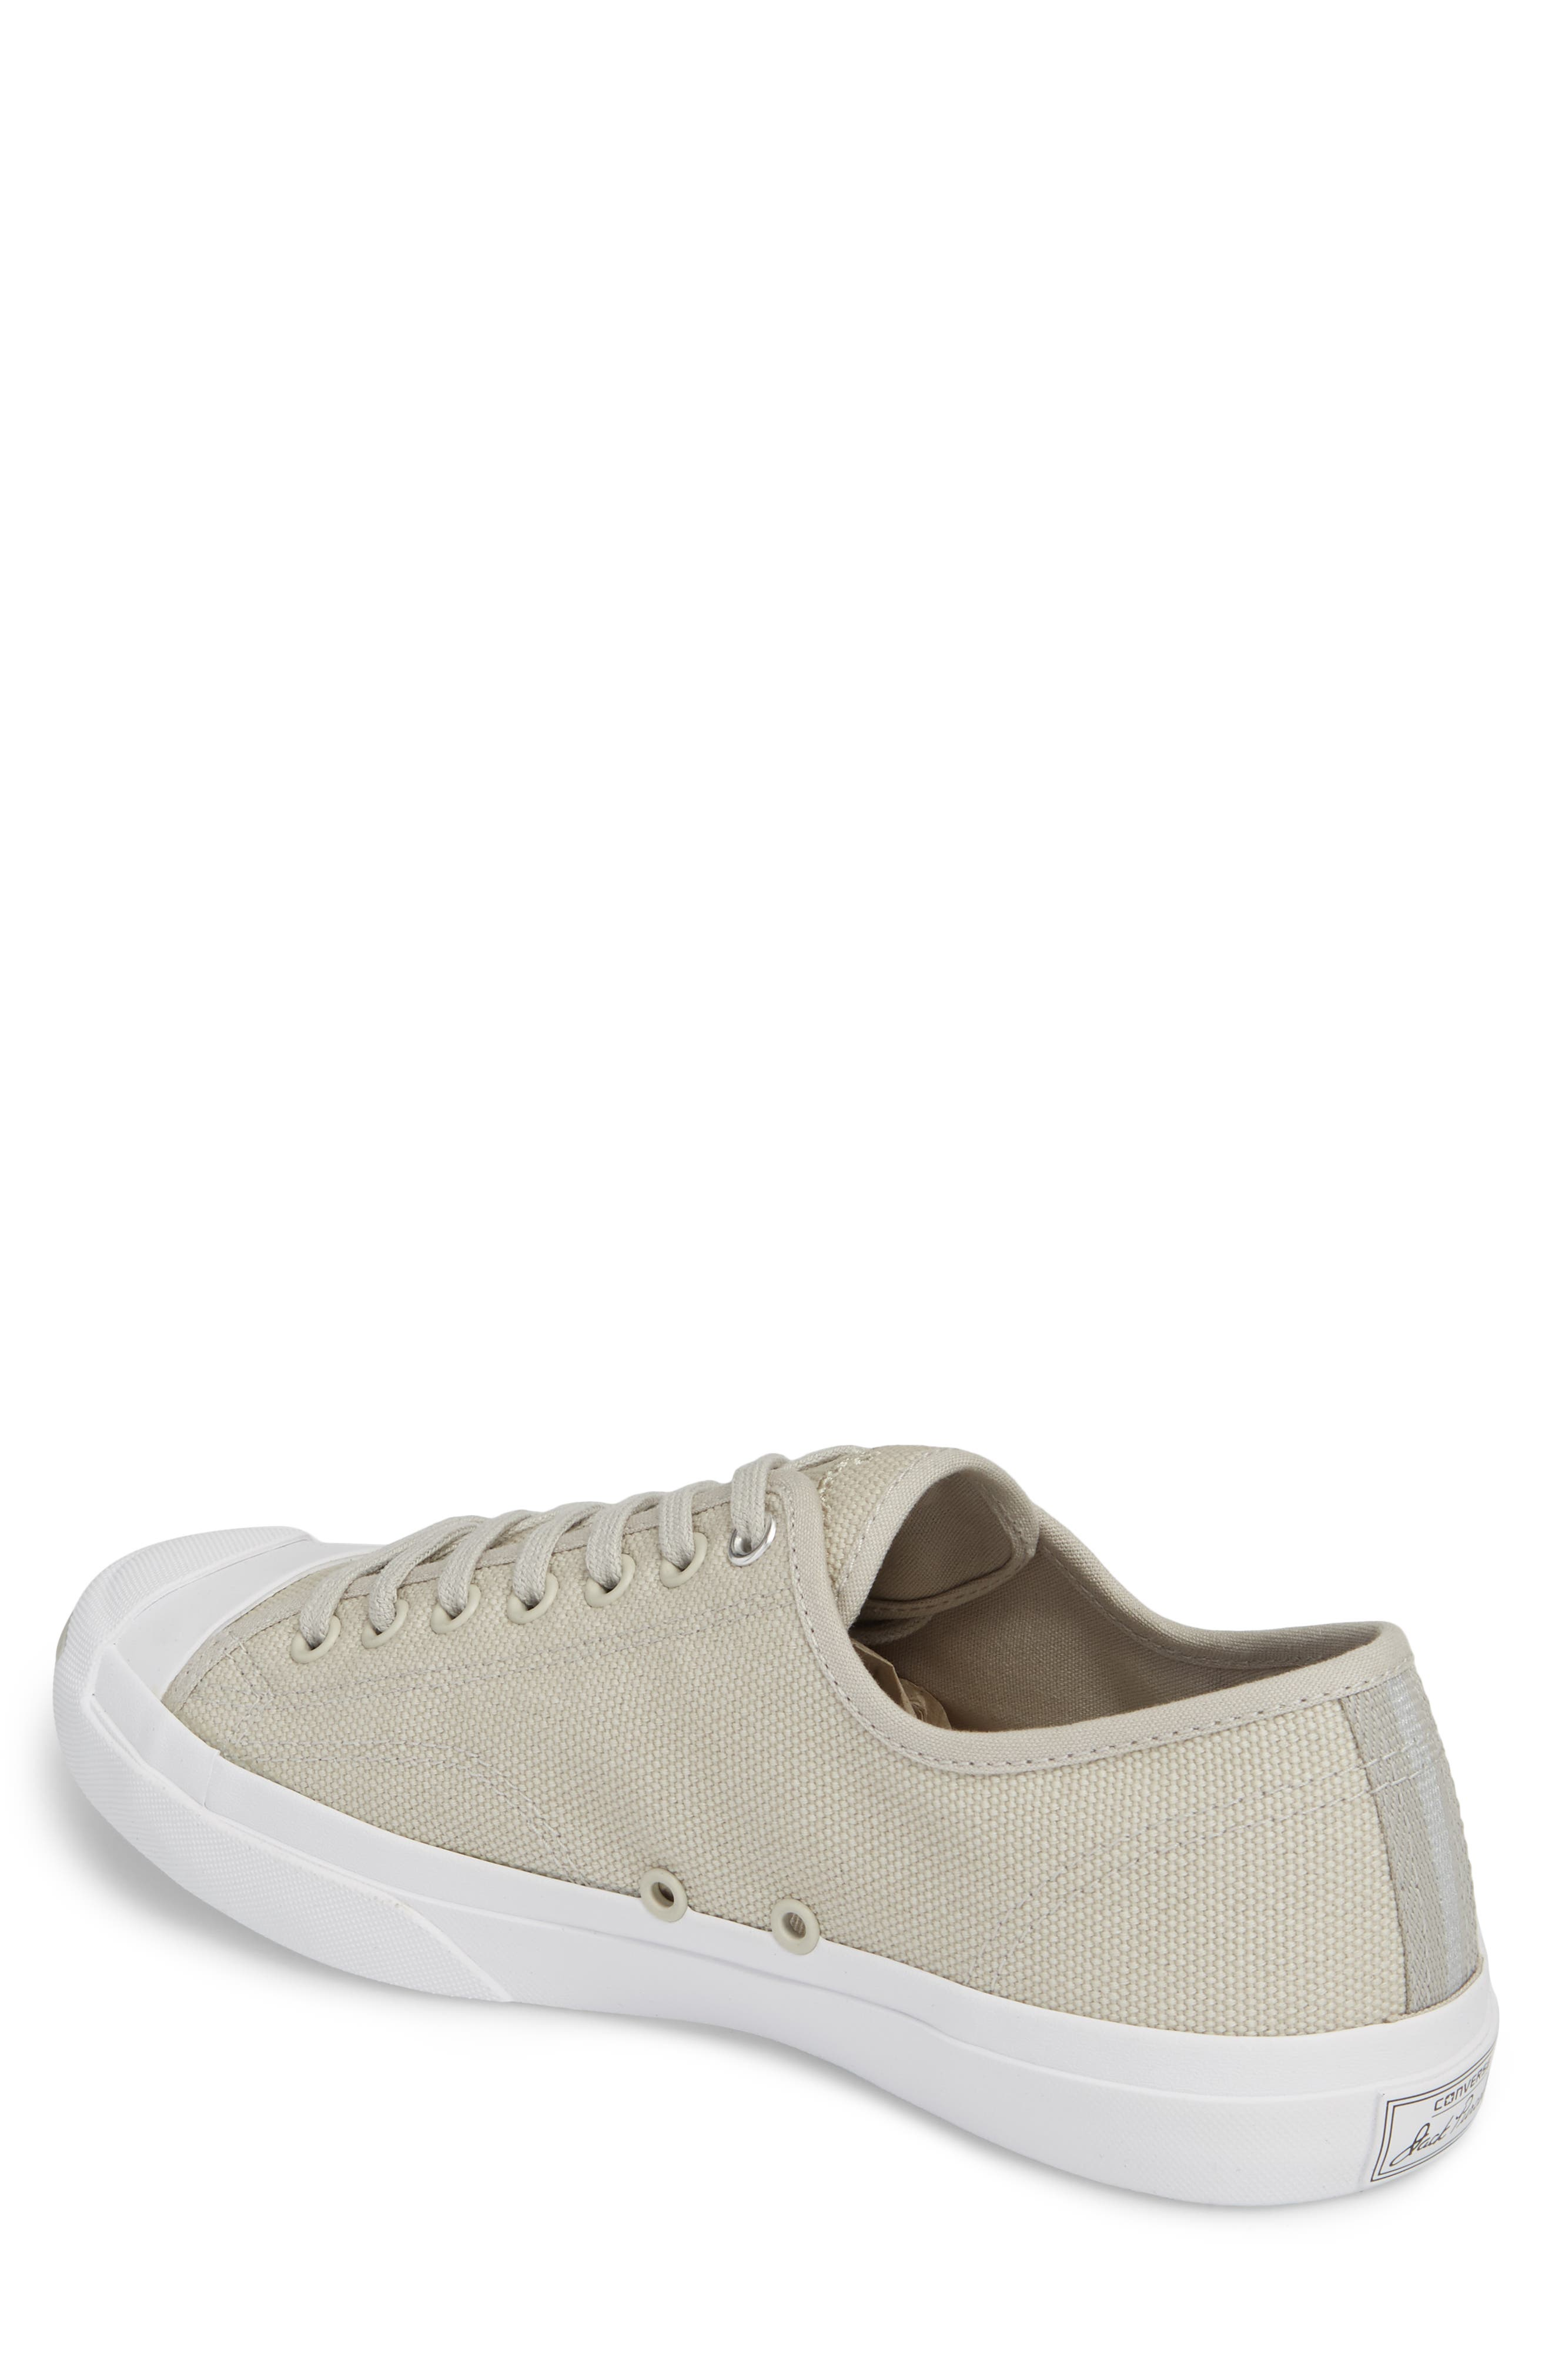 Jack Purcell Sneaker,                             Alternate thumbnail 2, color,                             Pale Grey Canvas